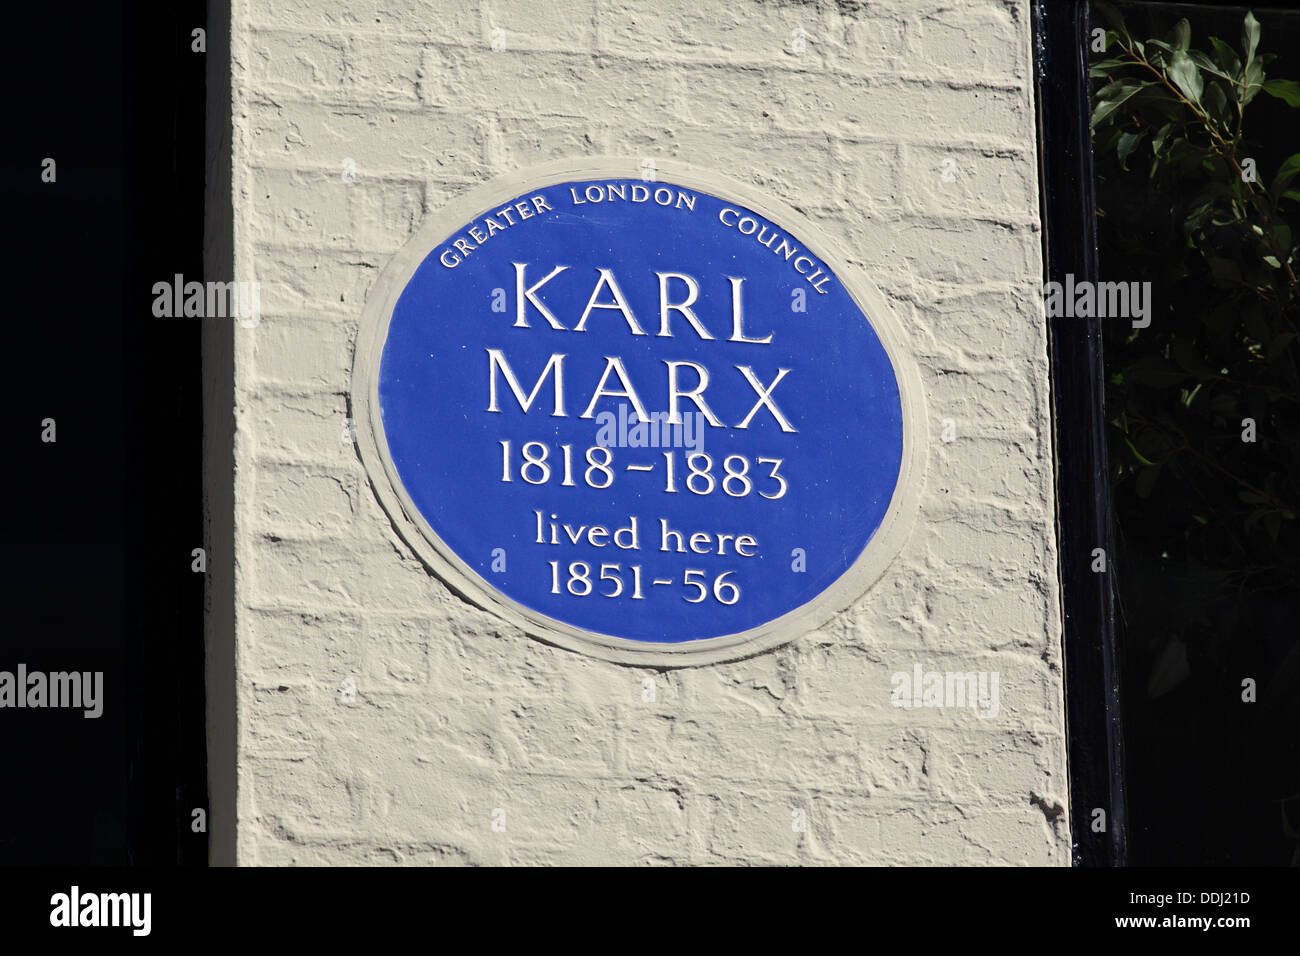 Blue plaque commemorating Karl Marx in Dean Street, London, He lived at this address in Soho in the 1850s. - Stock Image